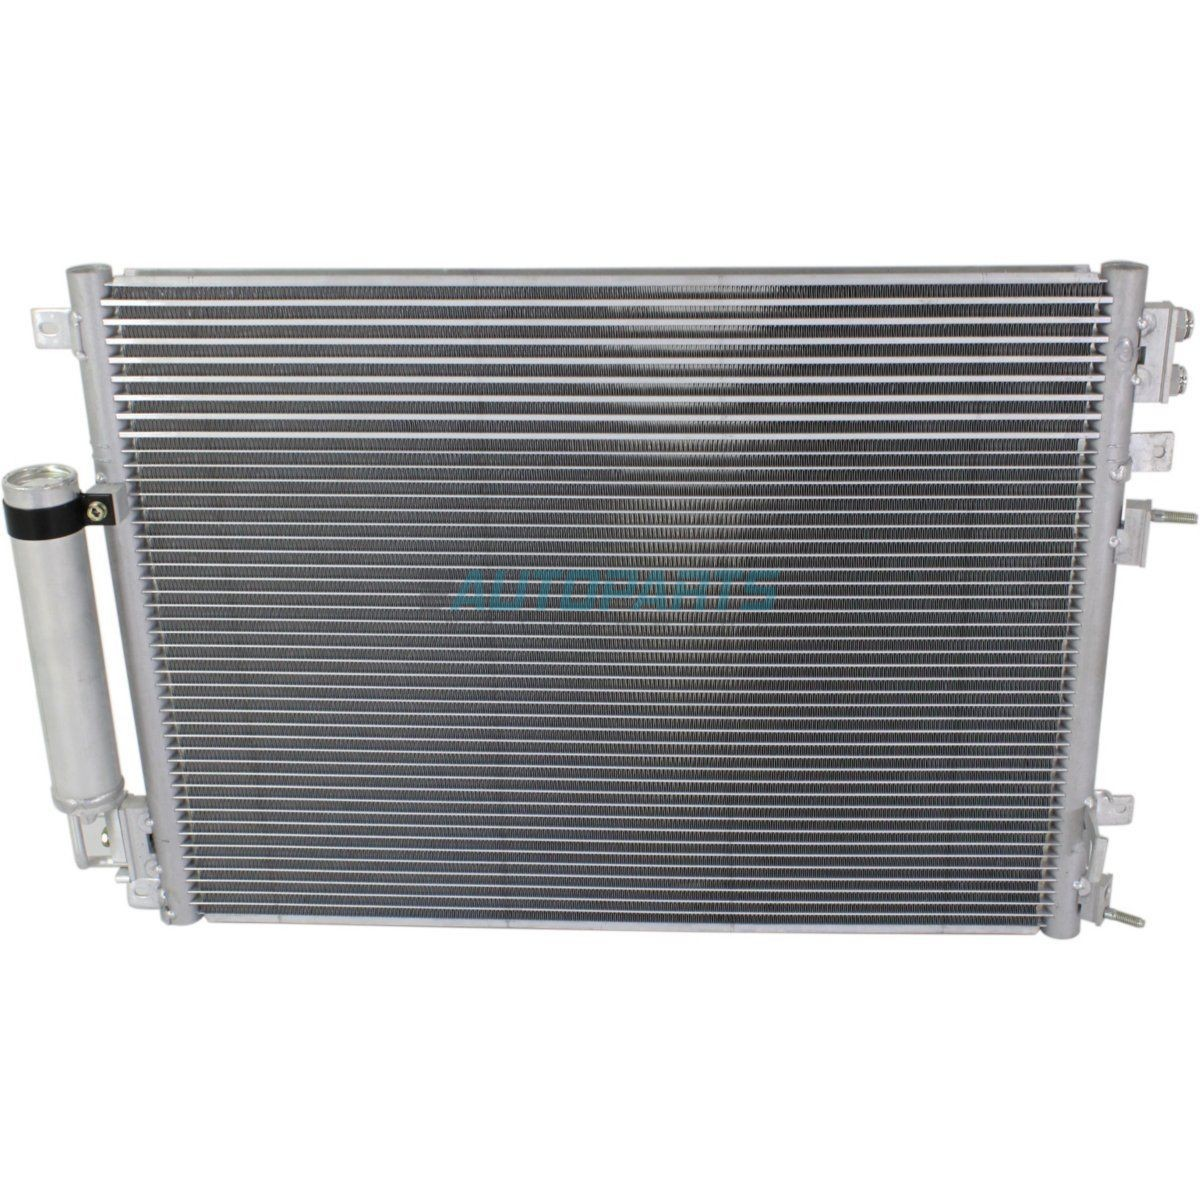 New A//C Condenser for Chrysler 300 CH3030210 2005 to 2013